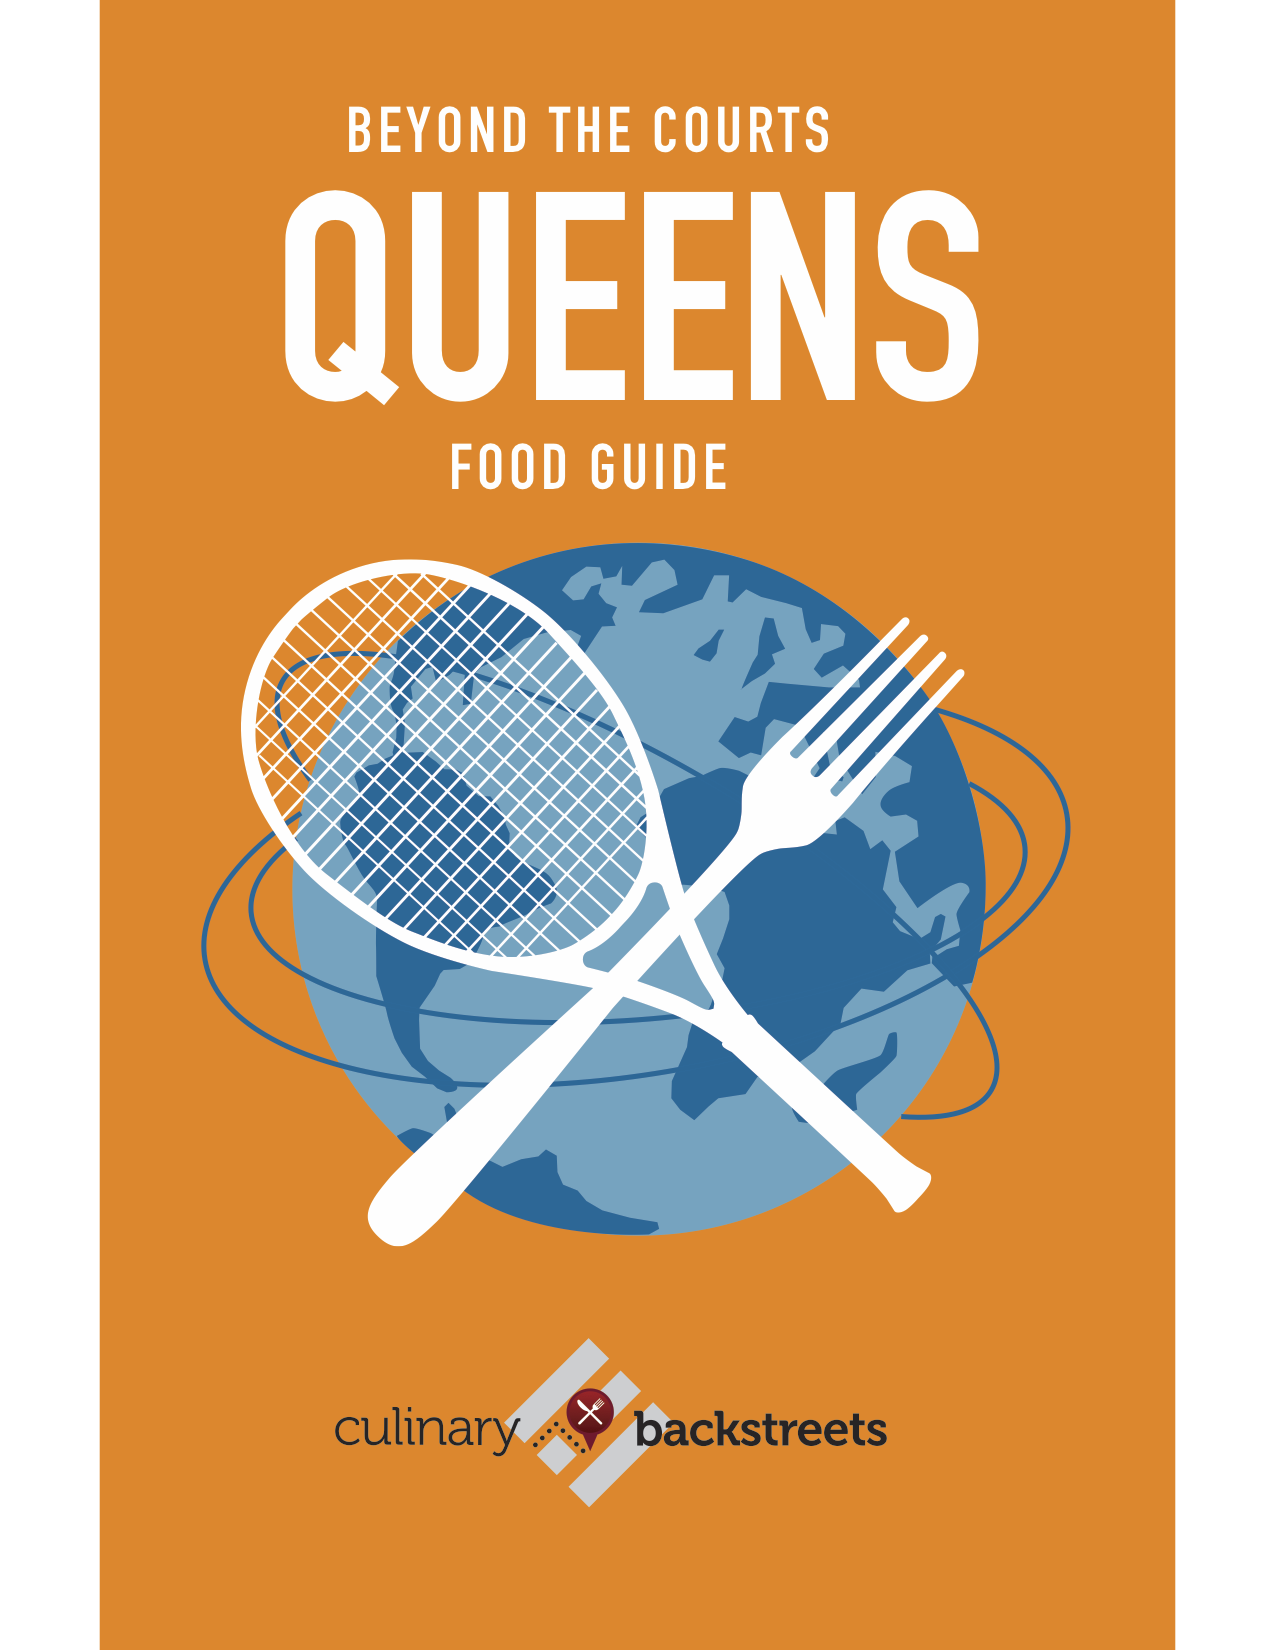 QueensEatingGuide-1 (dragged).png